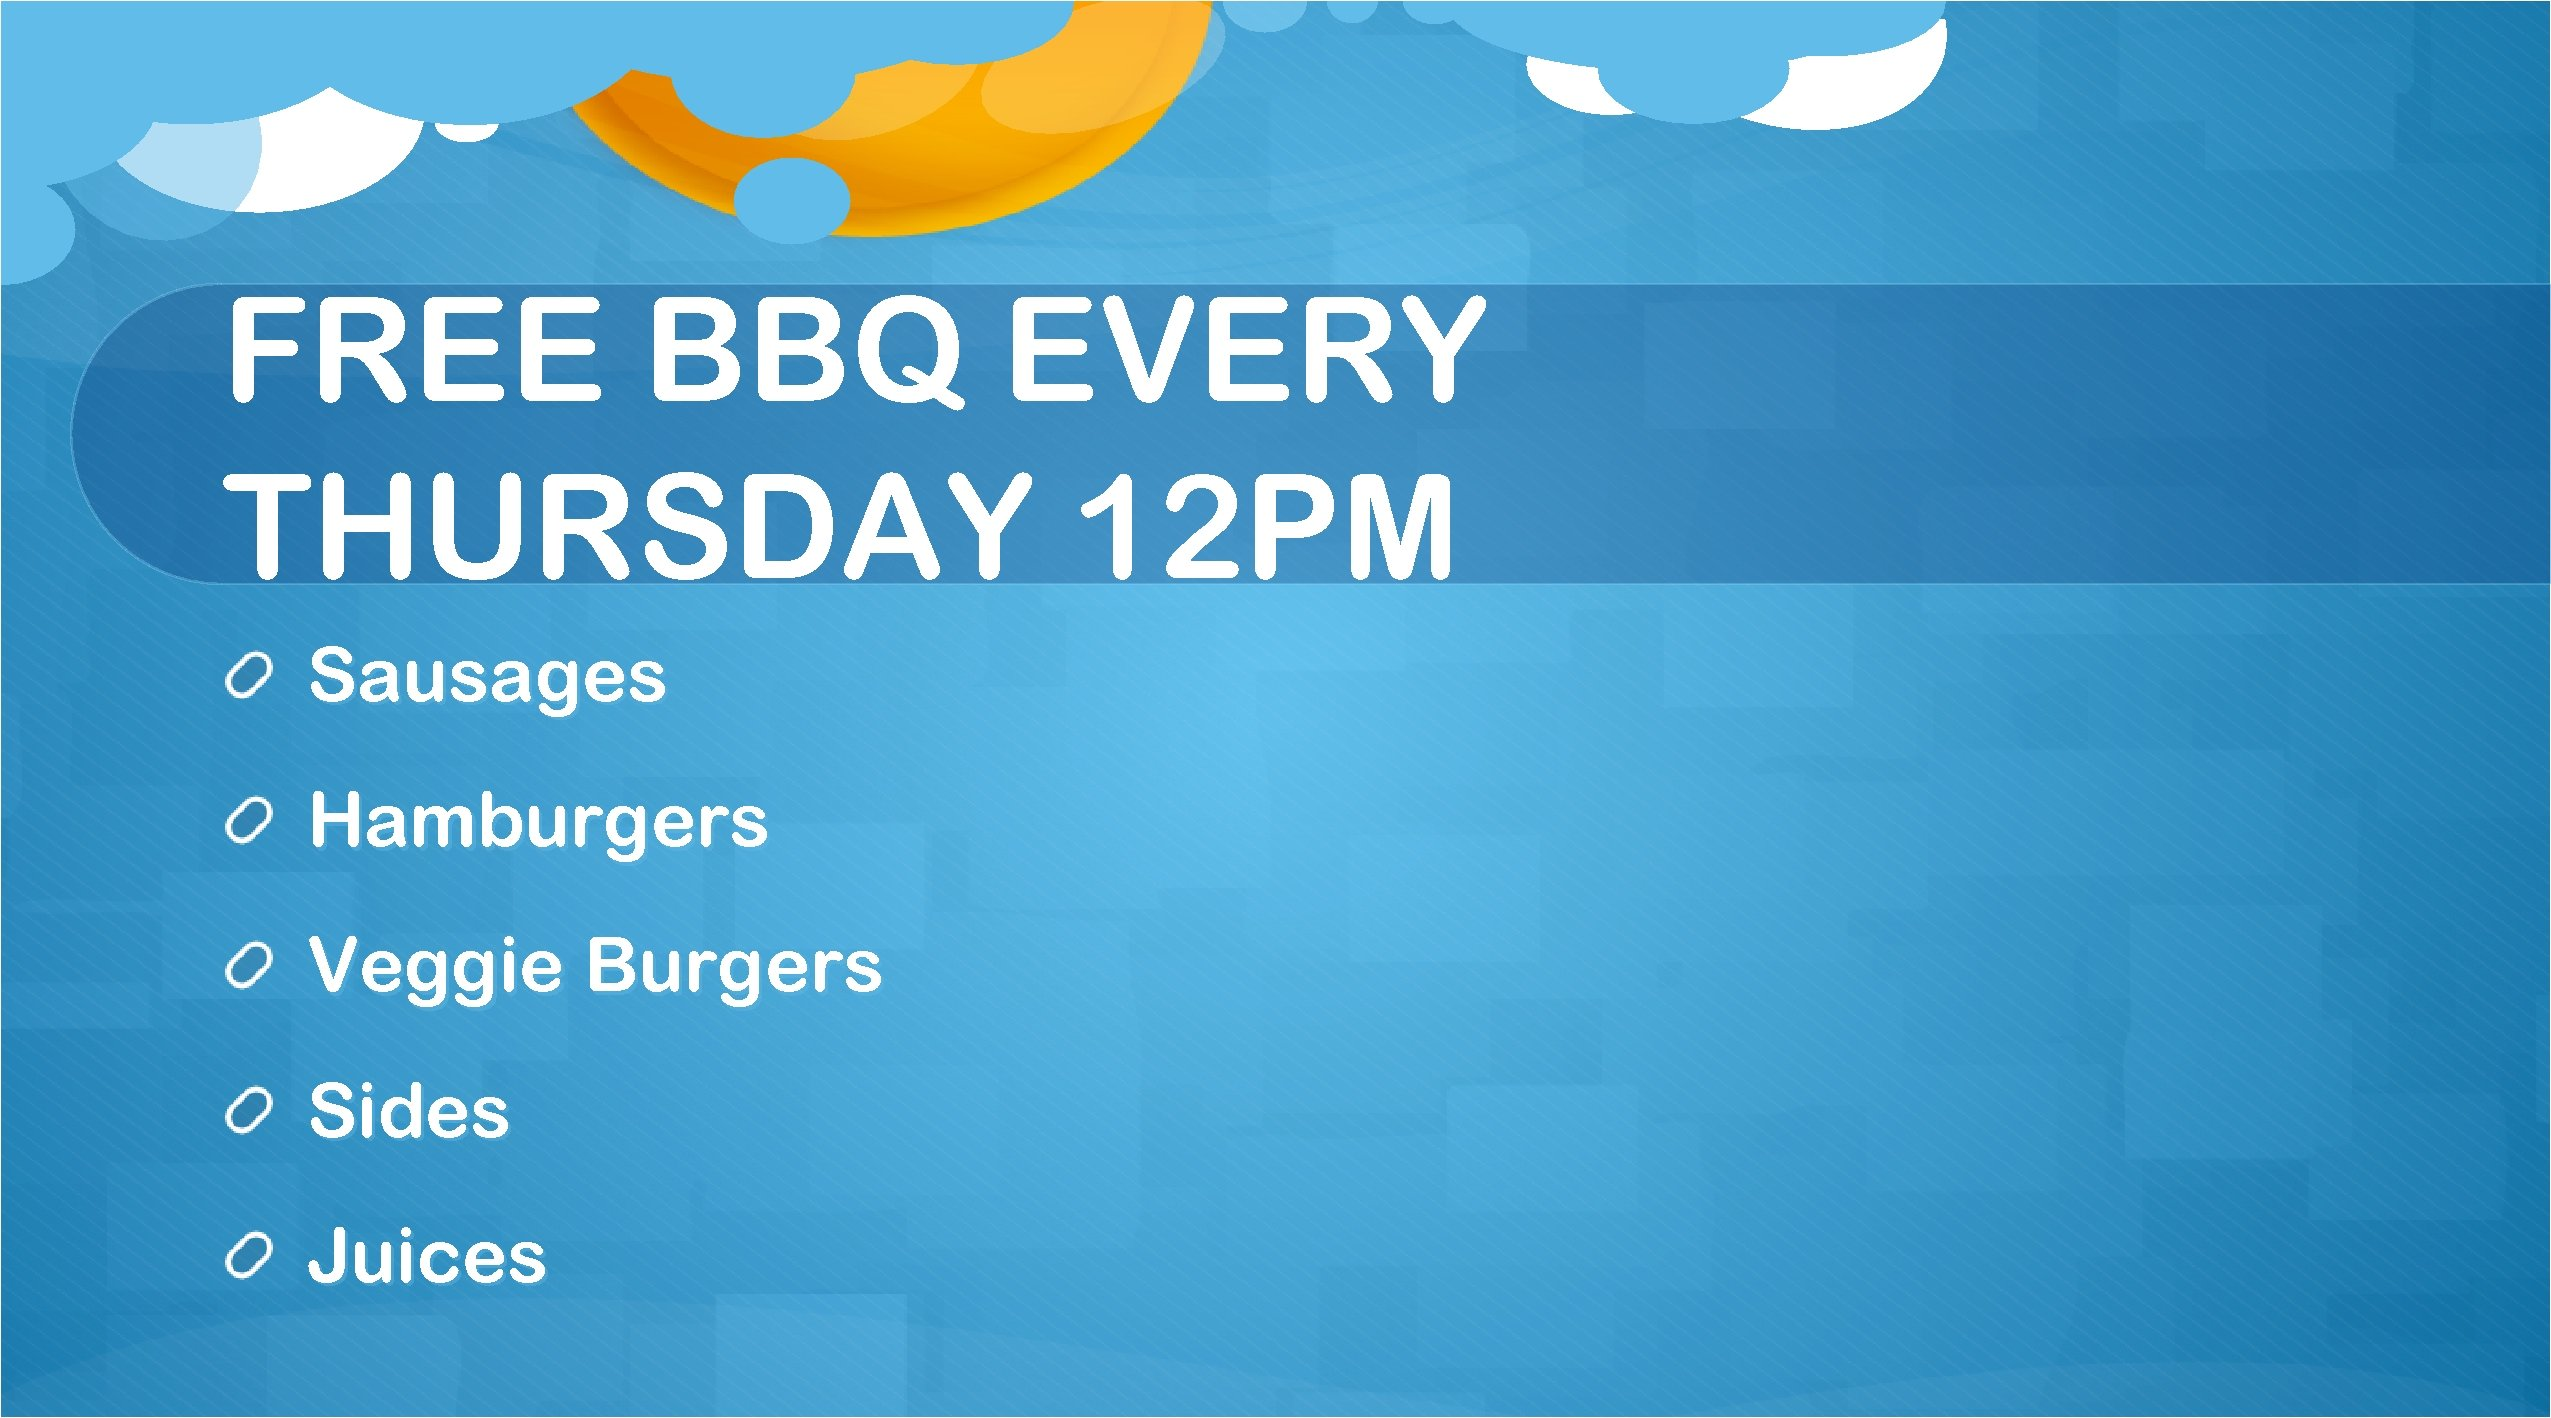 FREE BBQ EVERY THURSDAY 12 PM Sausages Hamburgers Veggie Burgers Sides Juices